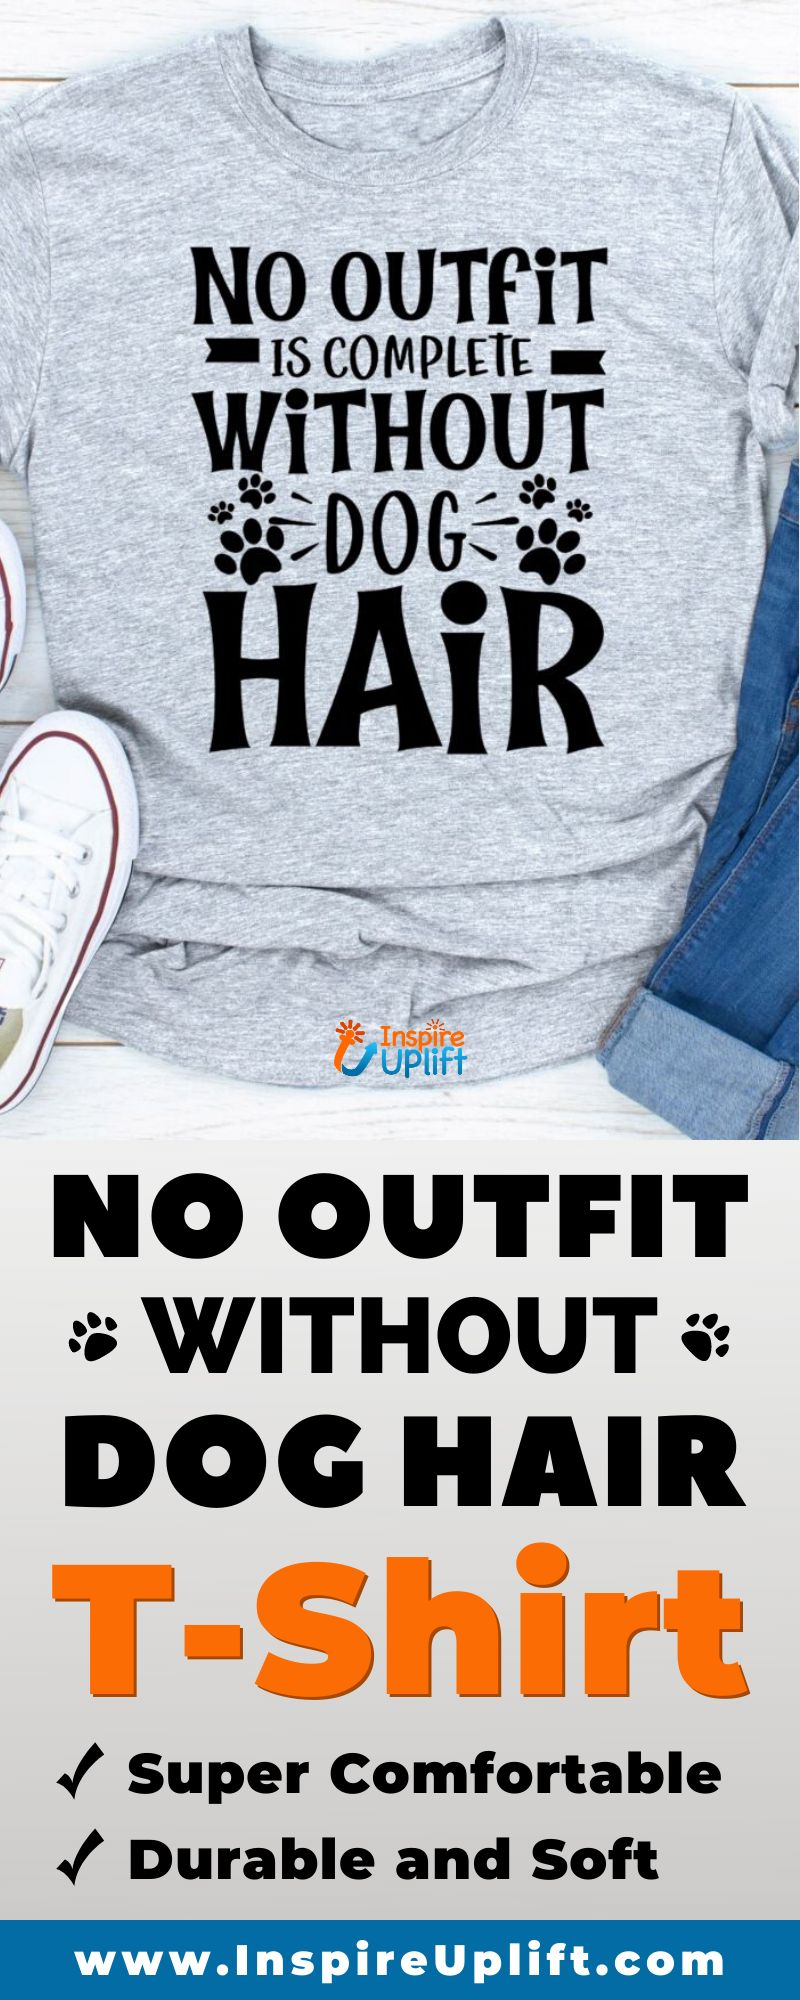 No Outfit Is Complete Without Dog Hair T-Shirt 😍 InspireUplift.com